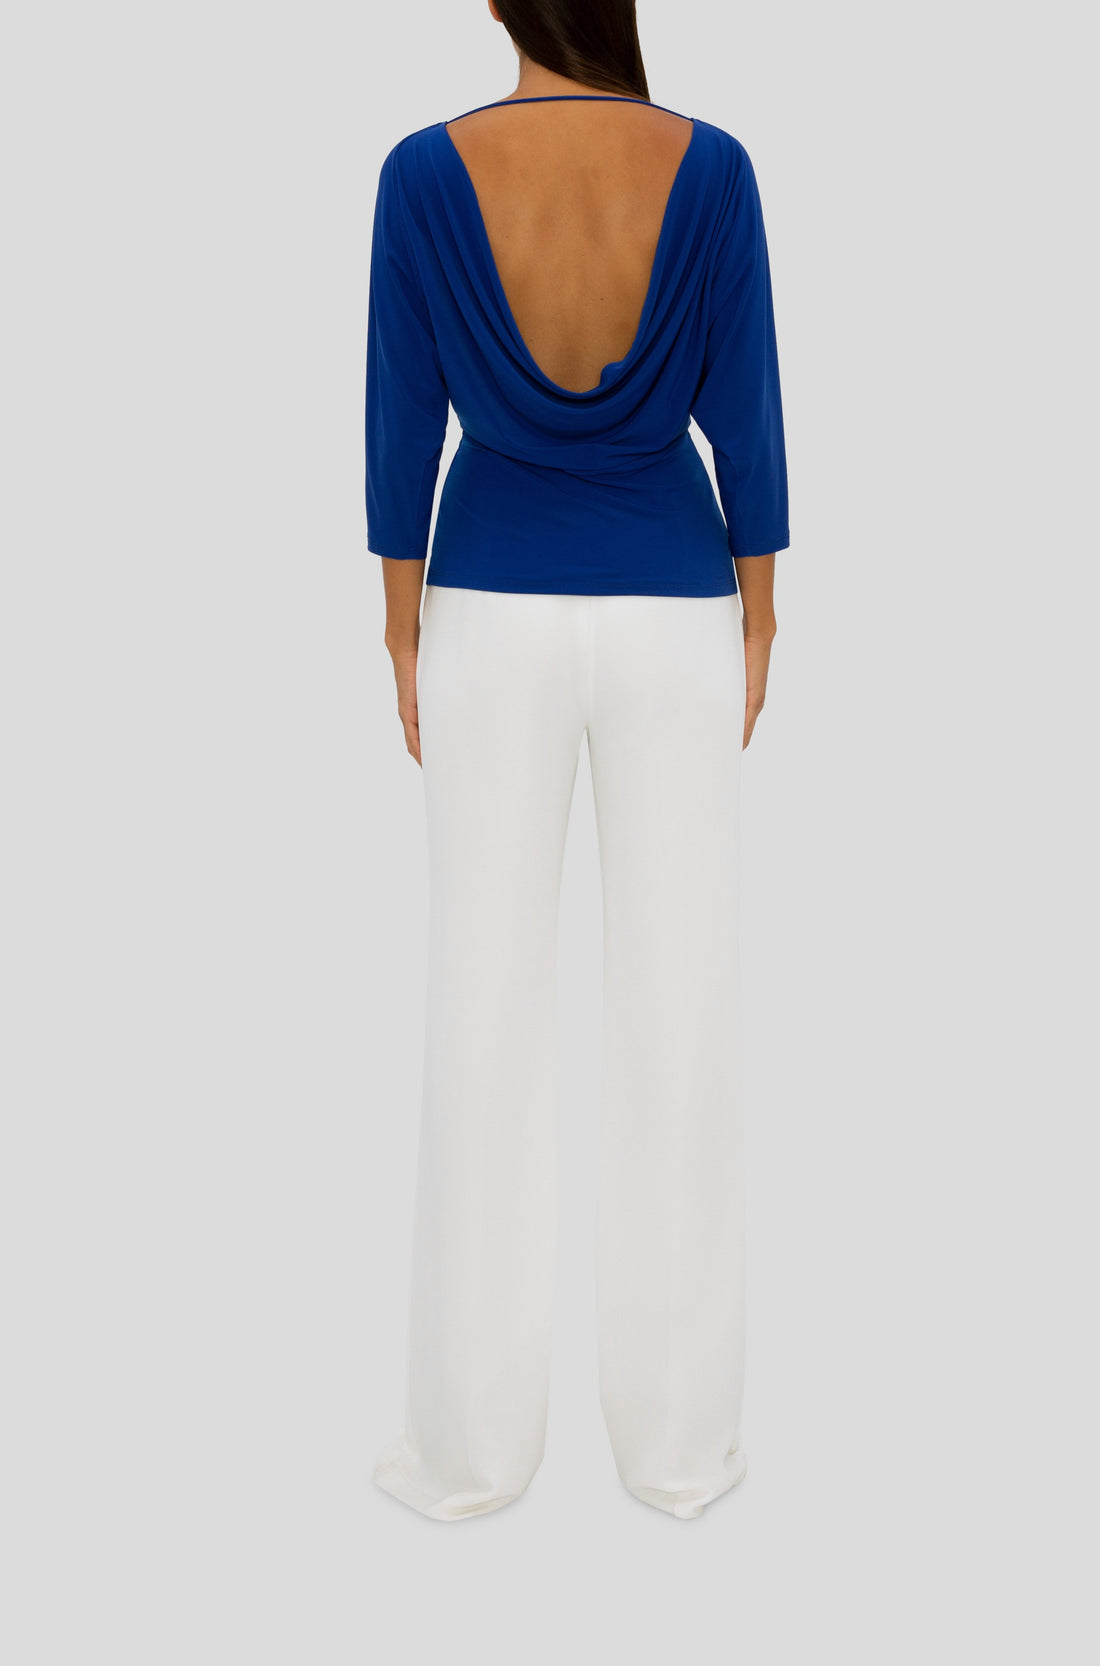 THE COBALT BACK BEAUTY TOP